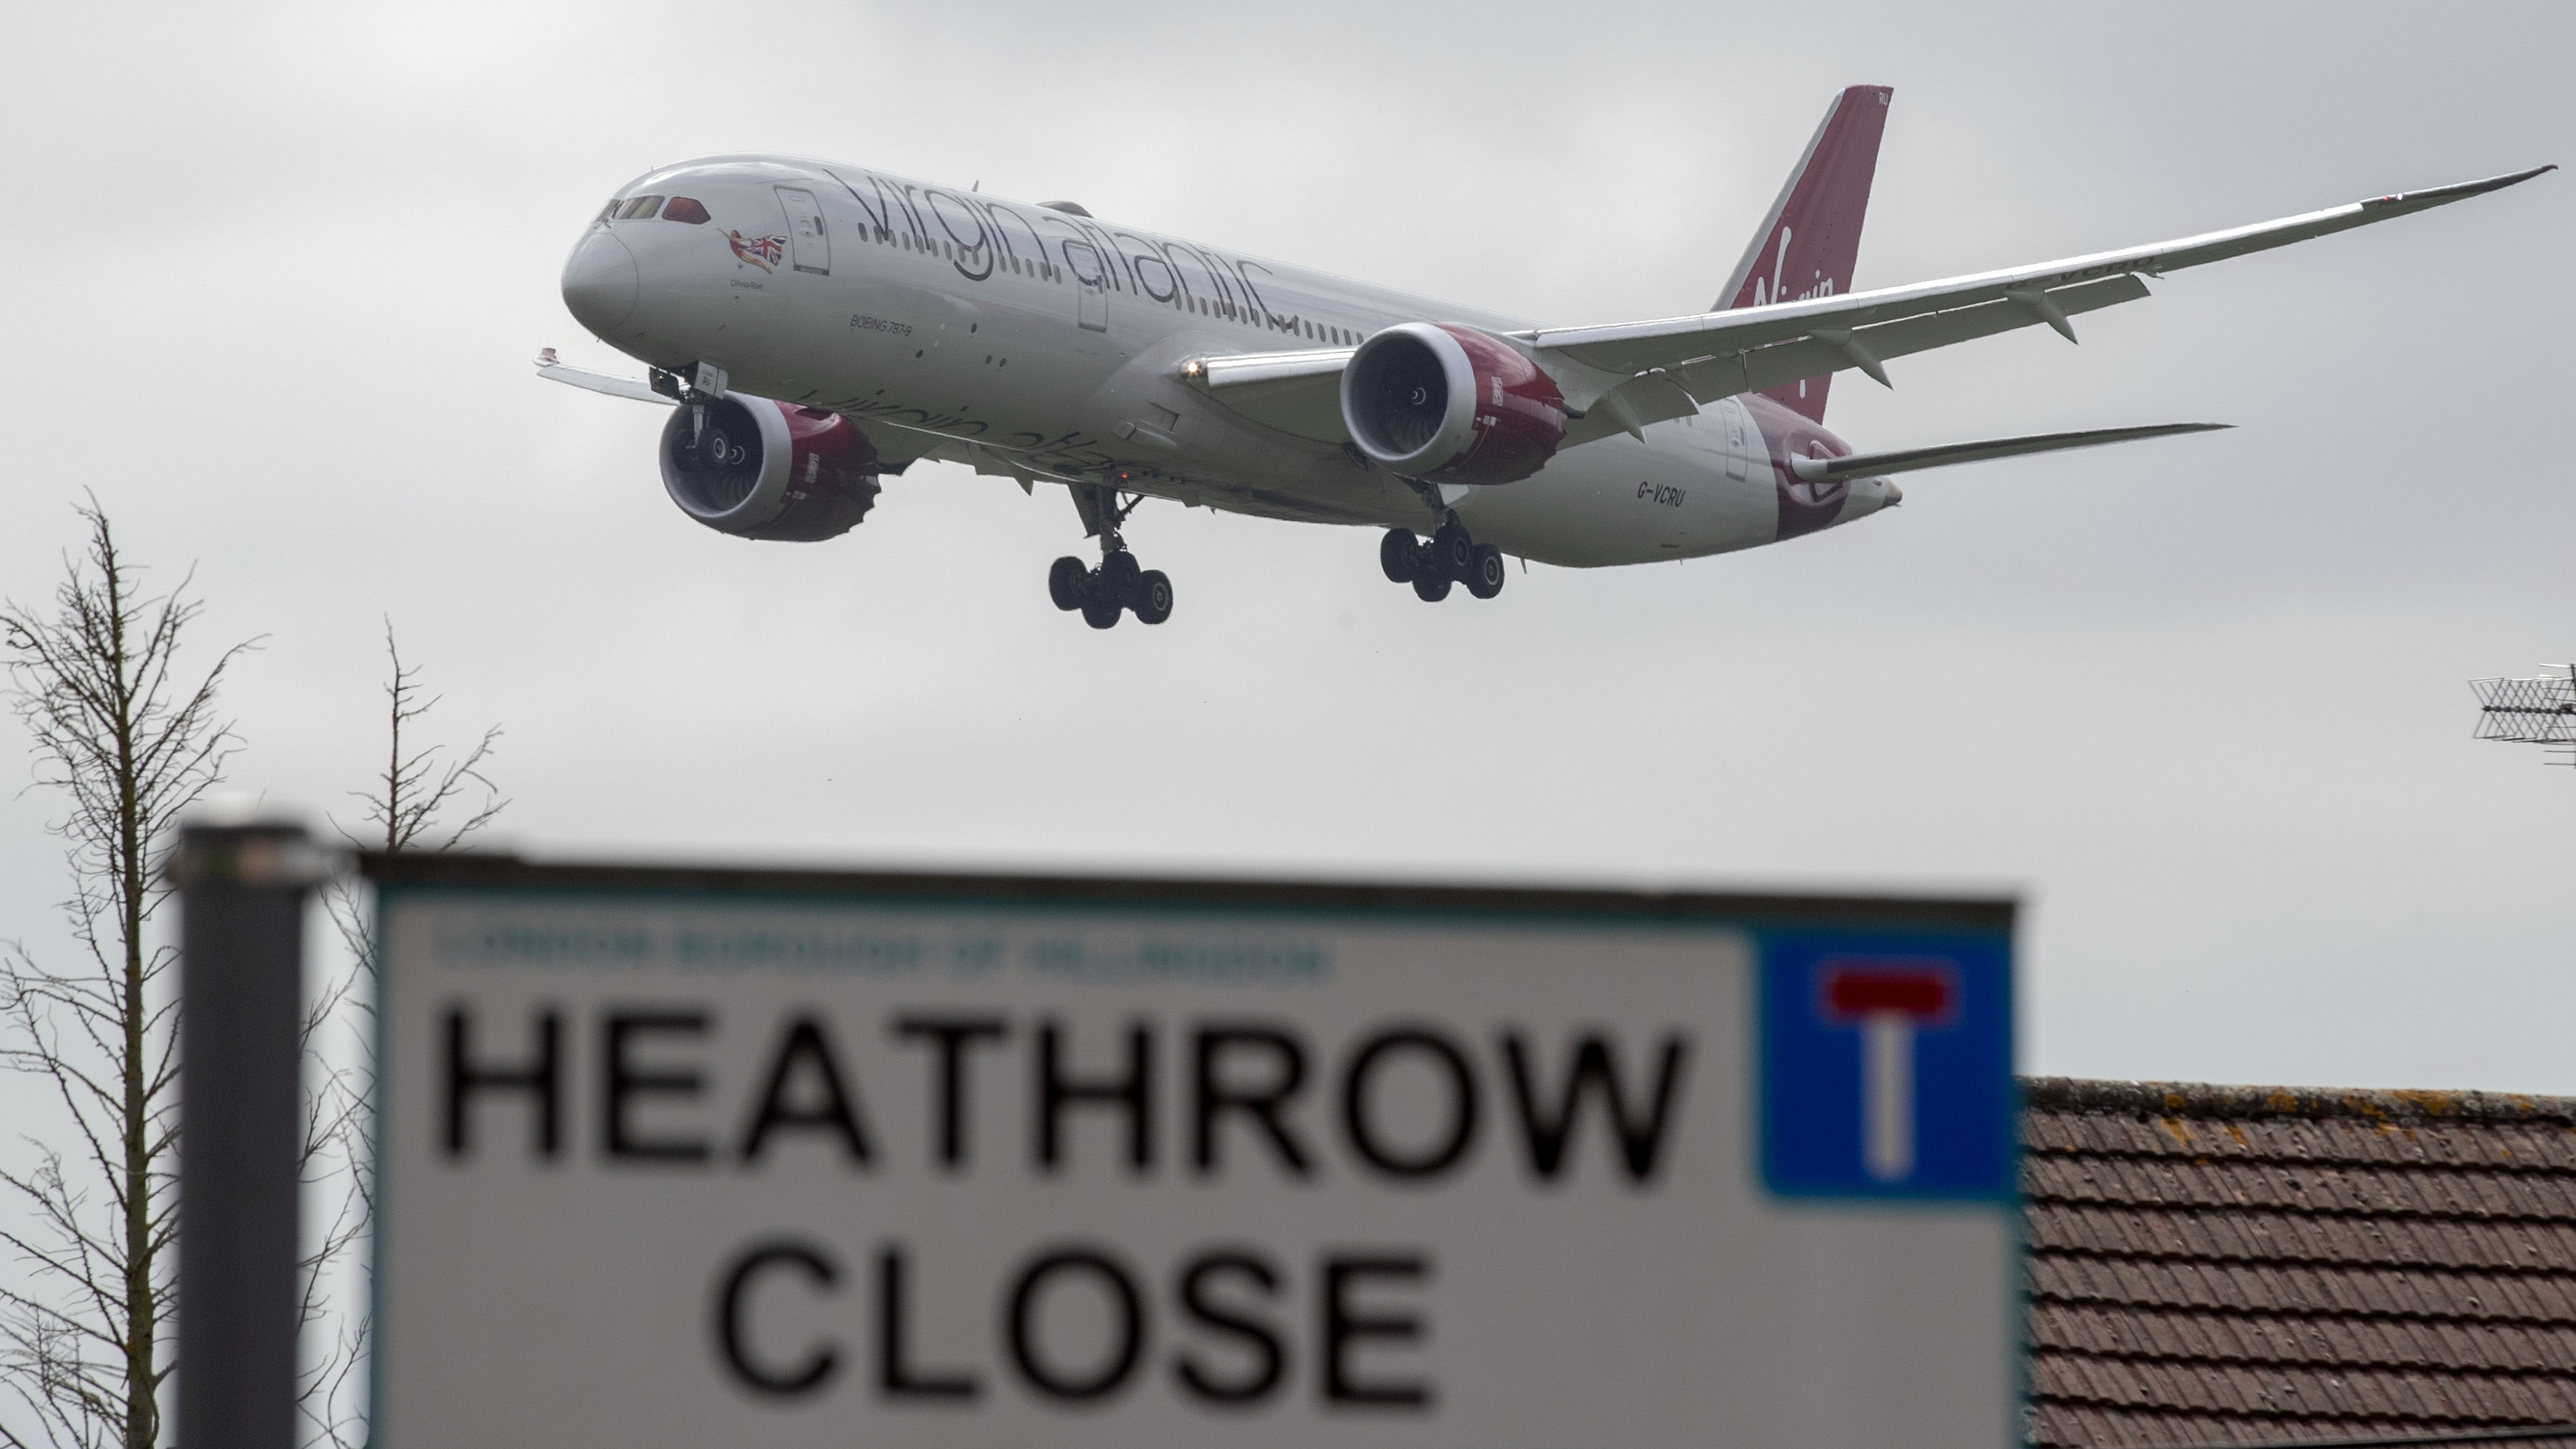 Heathrow expansion triggers minister's resignation but